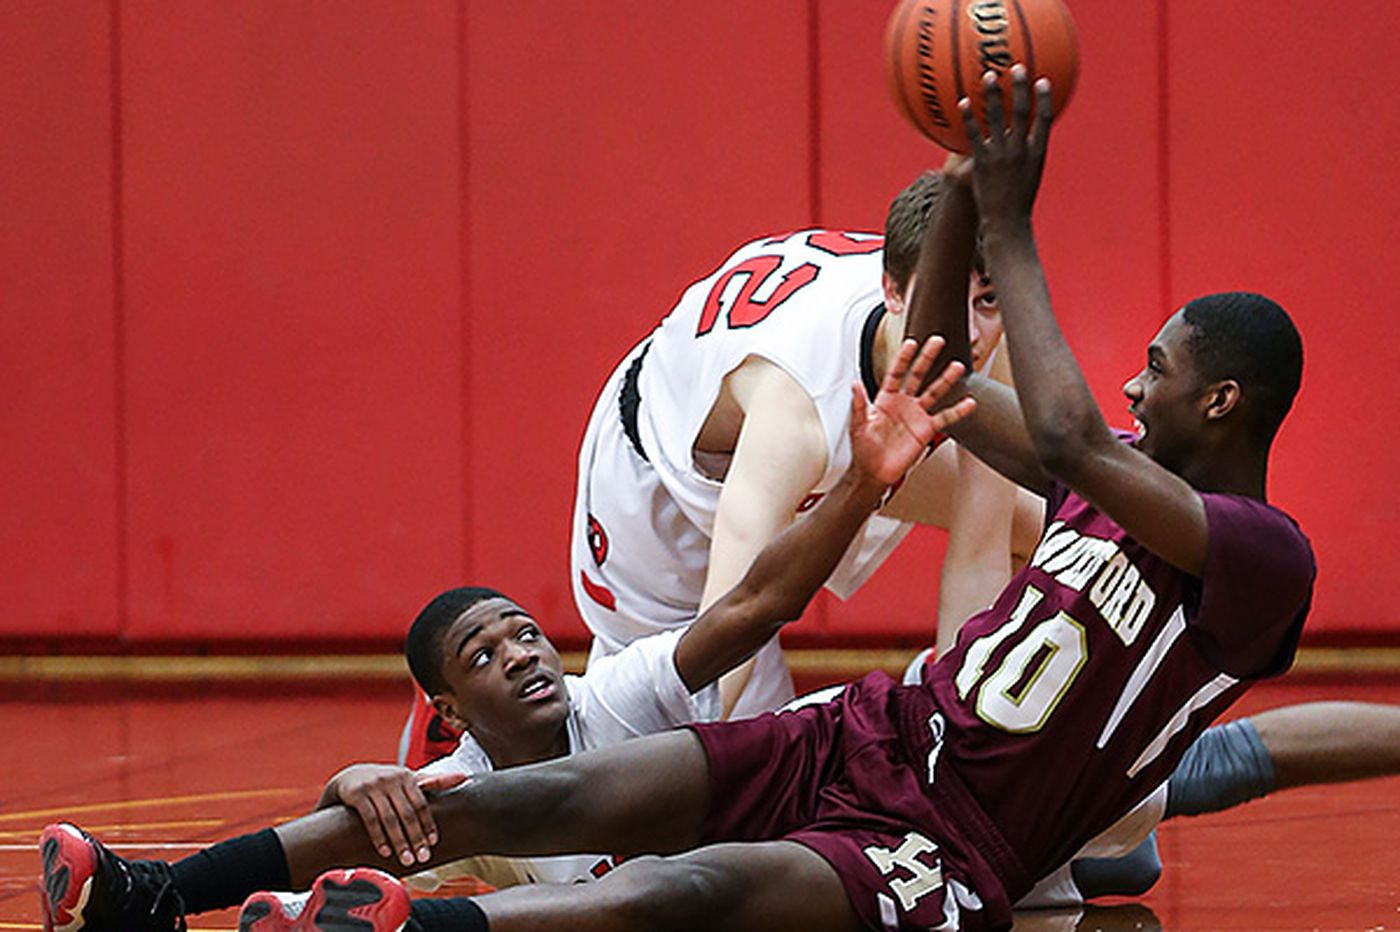 Haverford School hoops star Alston chooses Temple